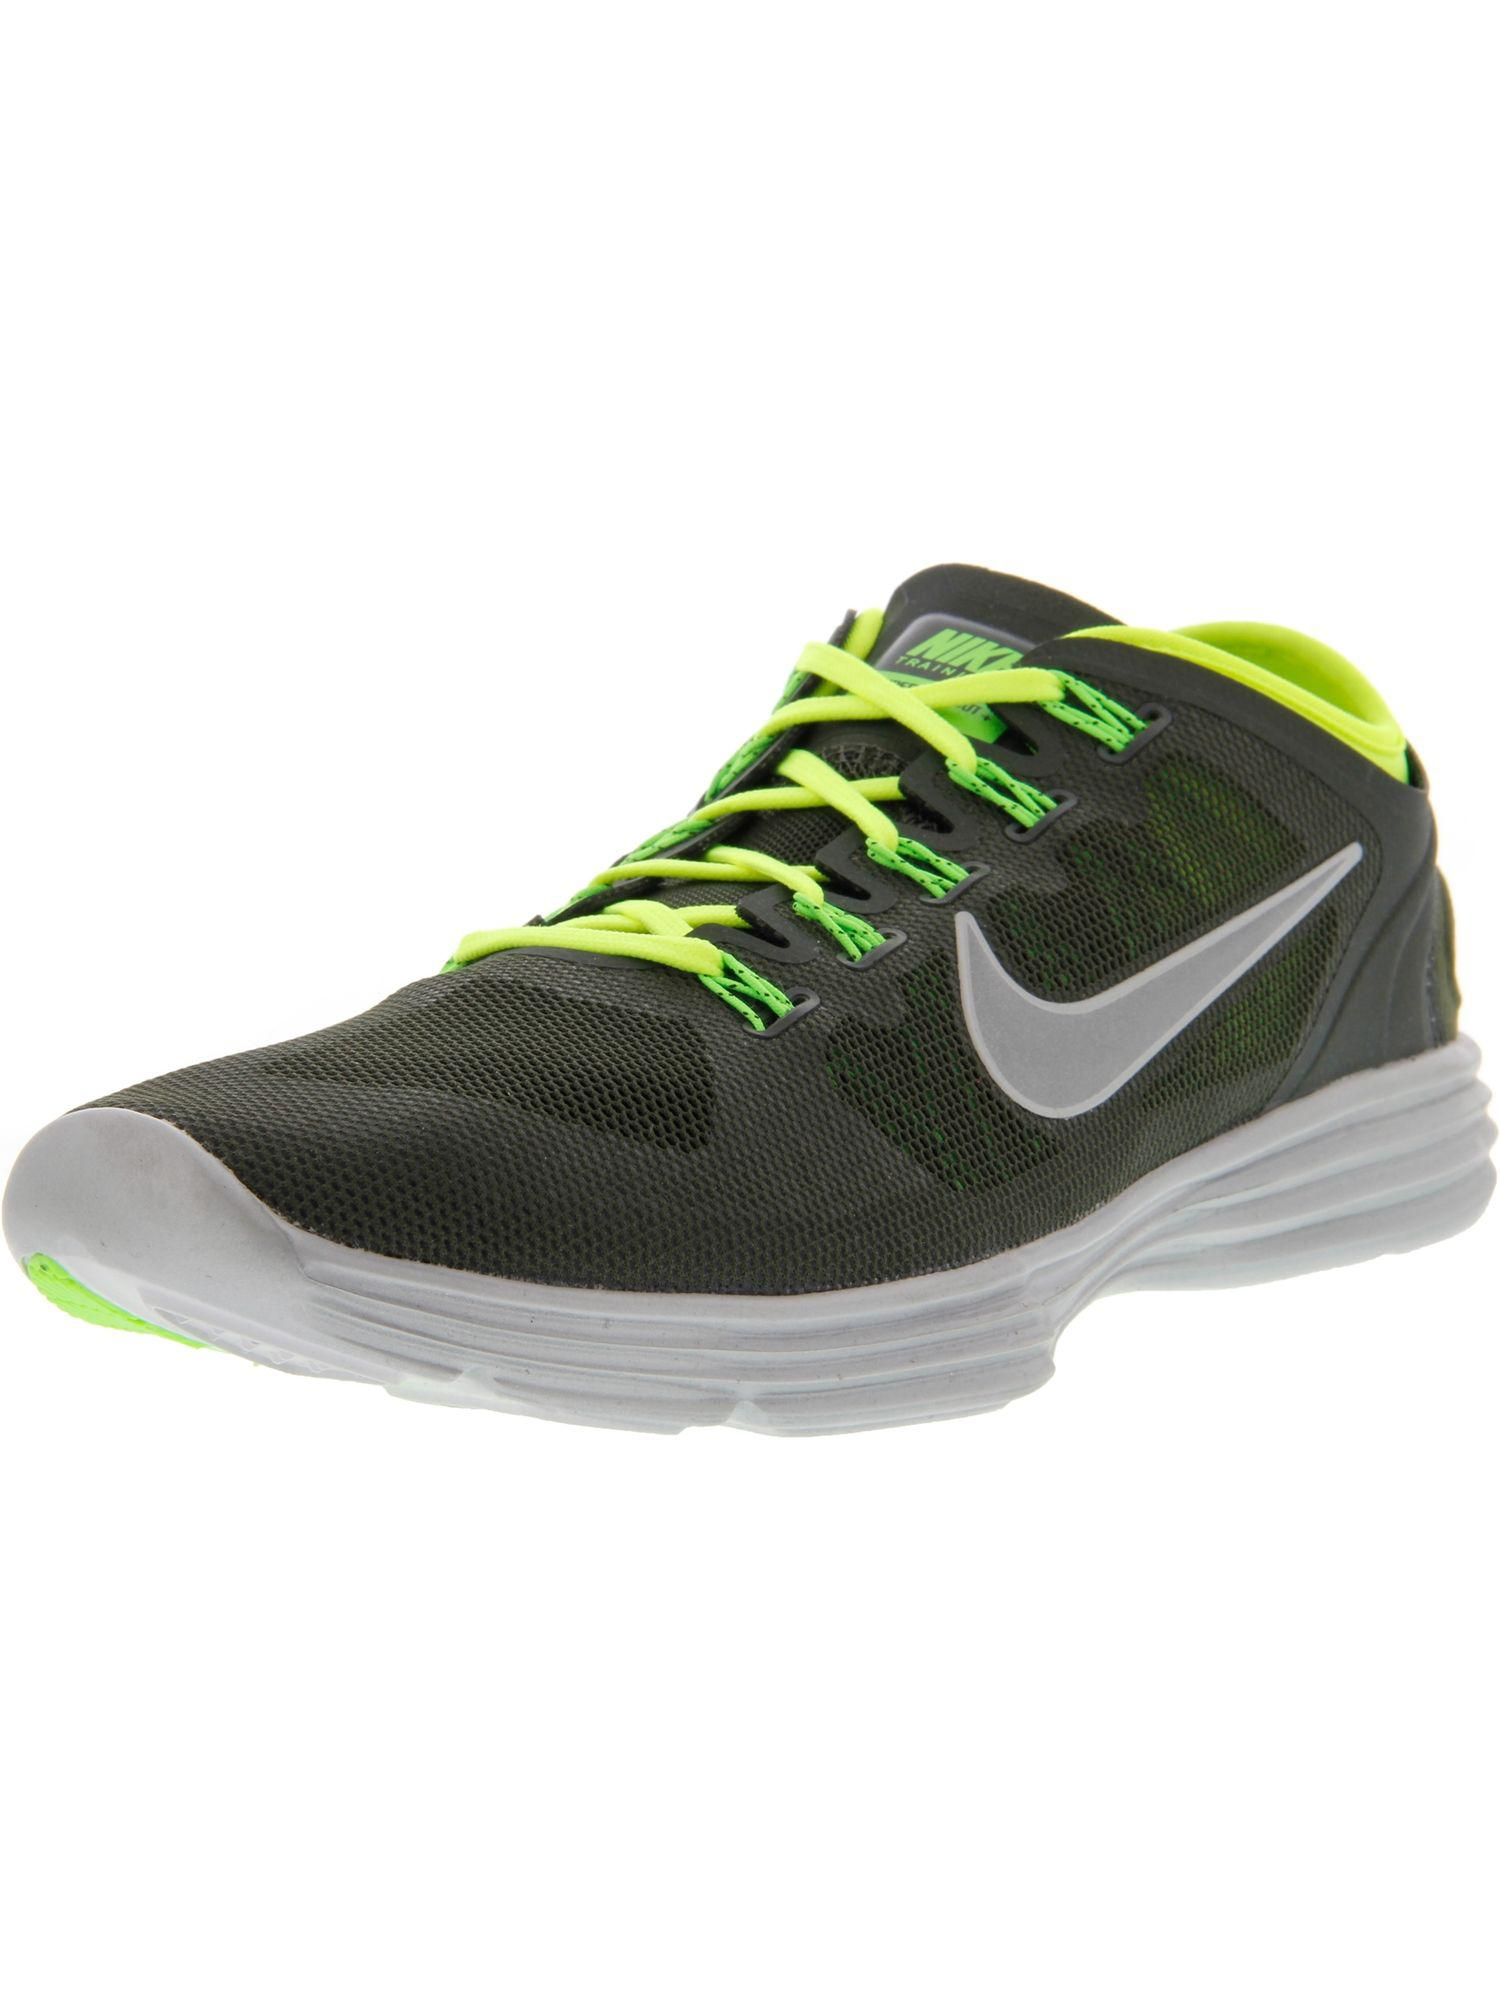 d1c2c734a1f86 Lyst - Nike Women s Lunarhyperworkout Xt+ Ankle-high Training Shoes ...